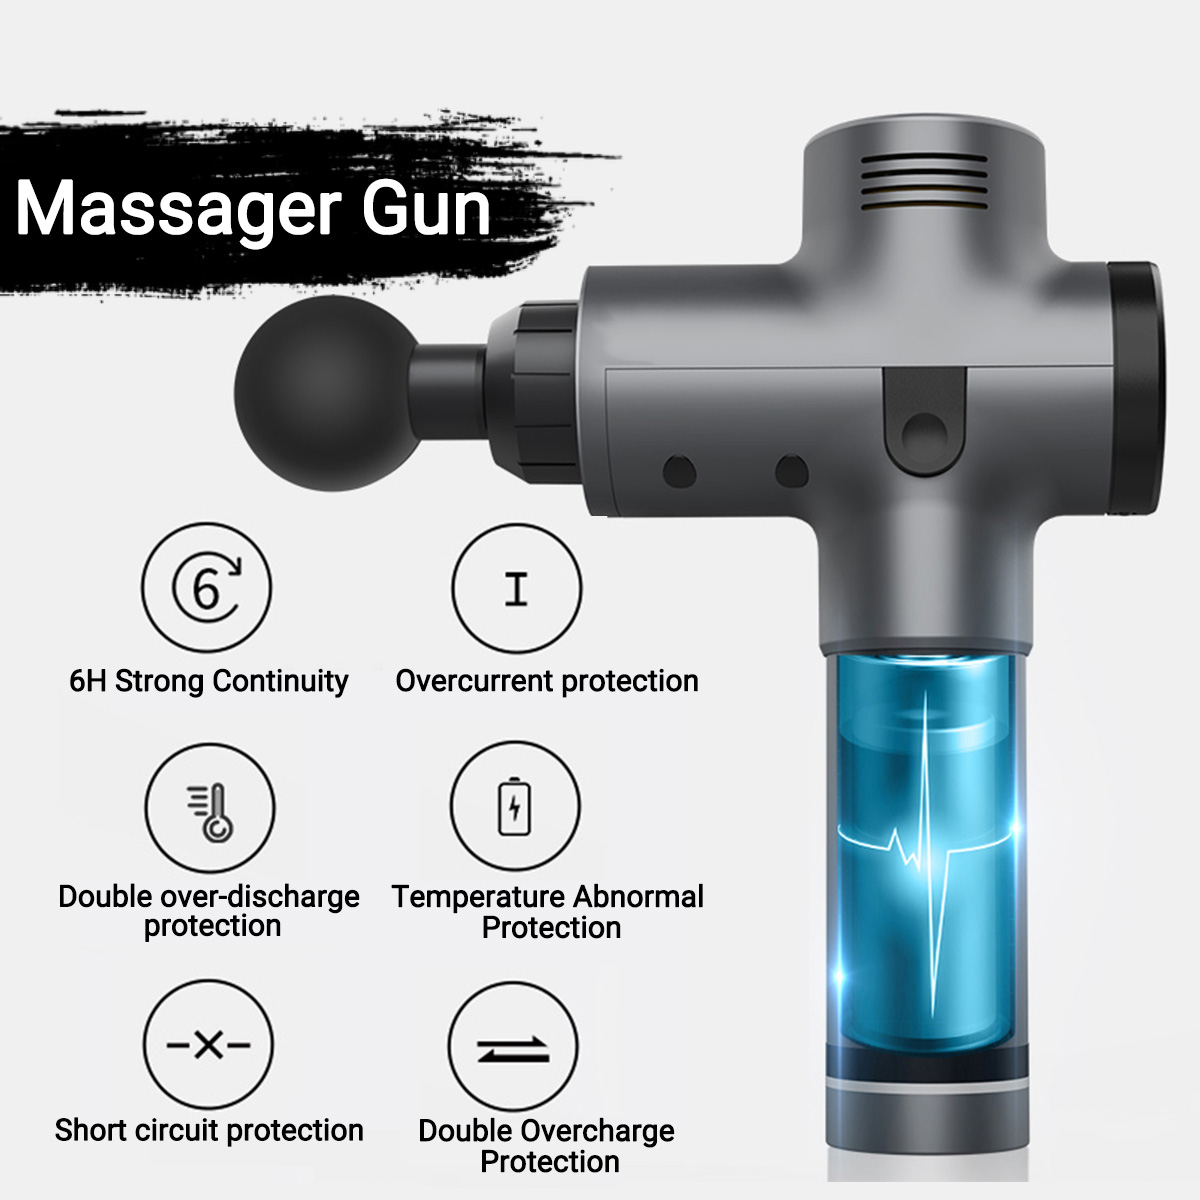 LED Touch Screen Muscle Massage Gun 3600r min Body Massager Electric Vibrating Therapy Guns Relax Muscle Massager With 4 Heads in Massage Relaxation from Beauty Health